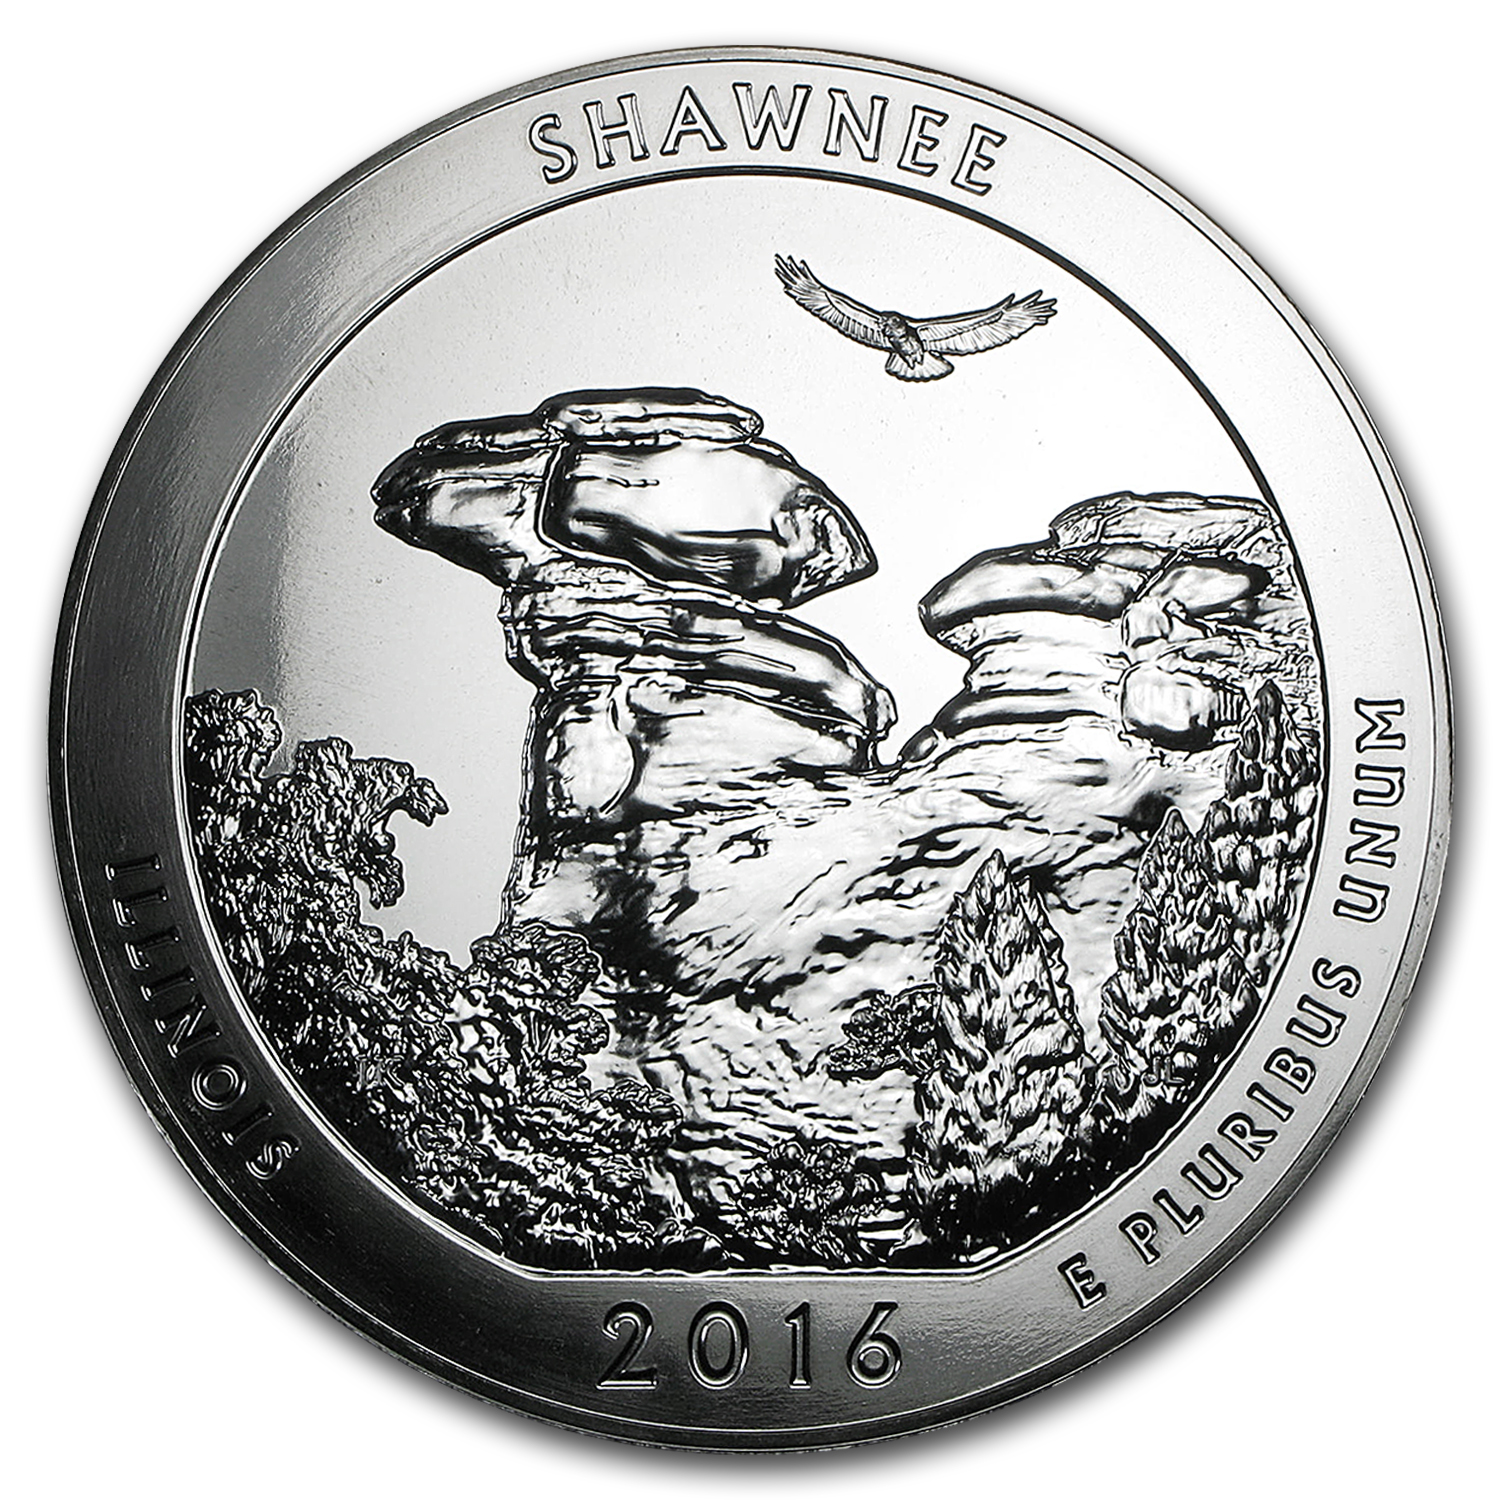 2016 5 oz Silver ATB Shawnee National Forest, IL